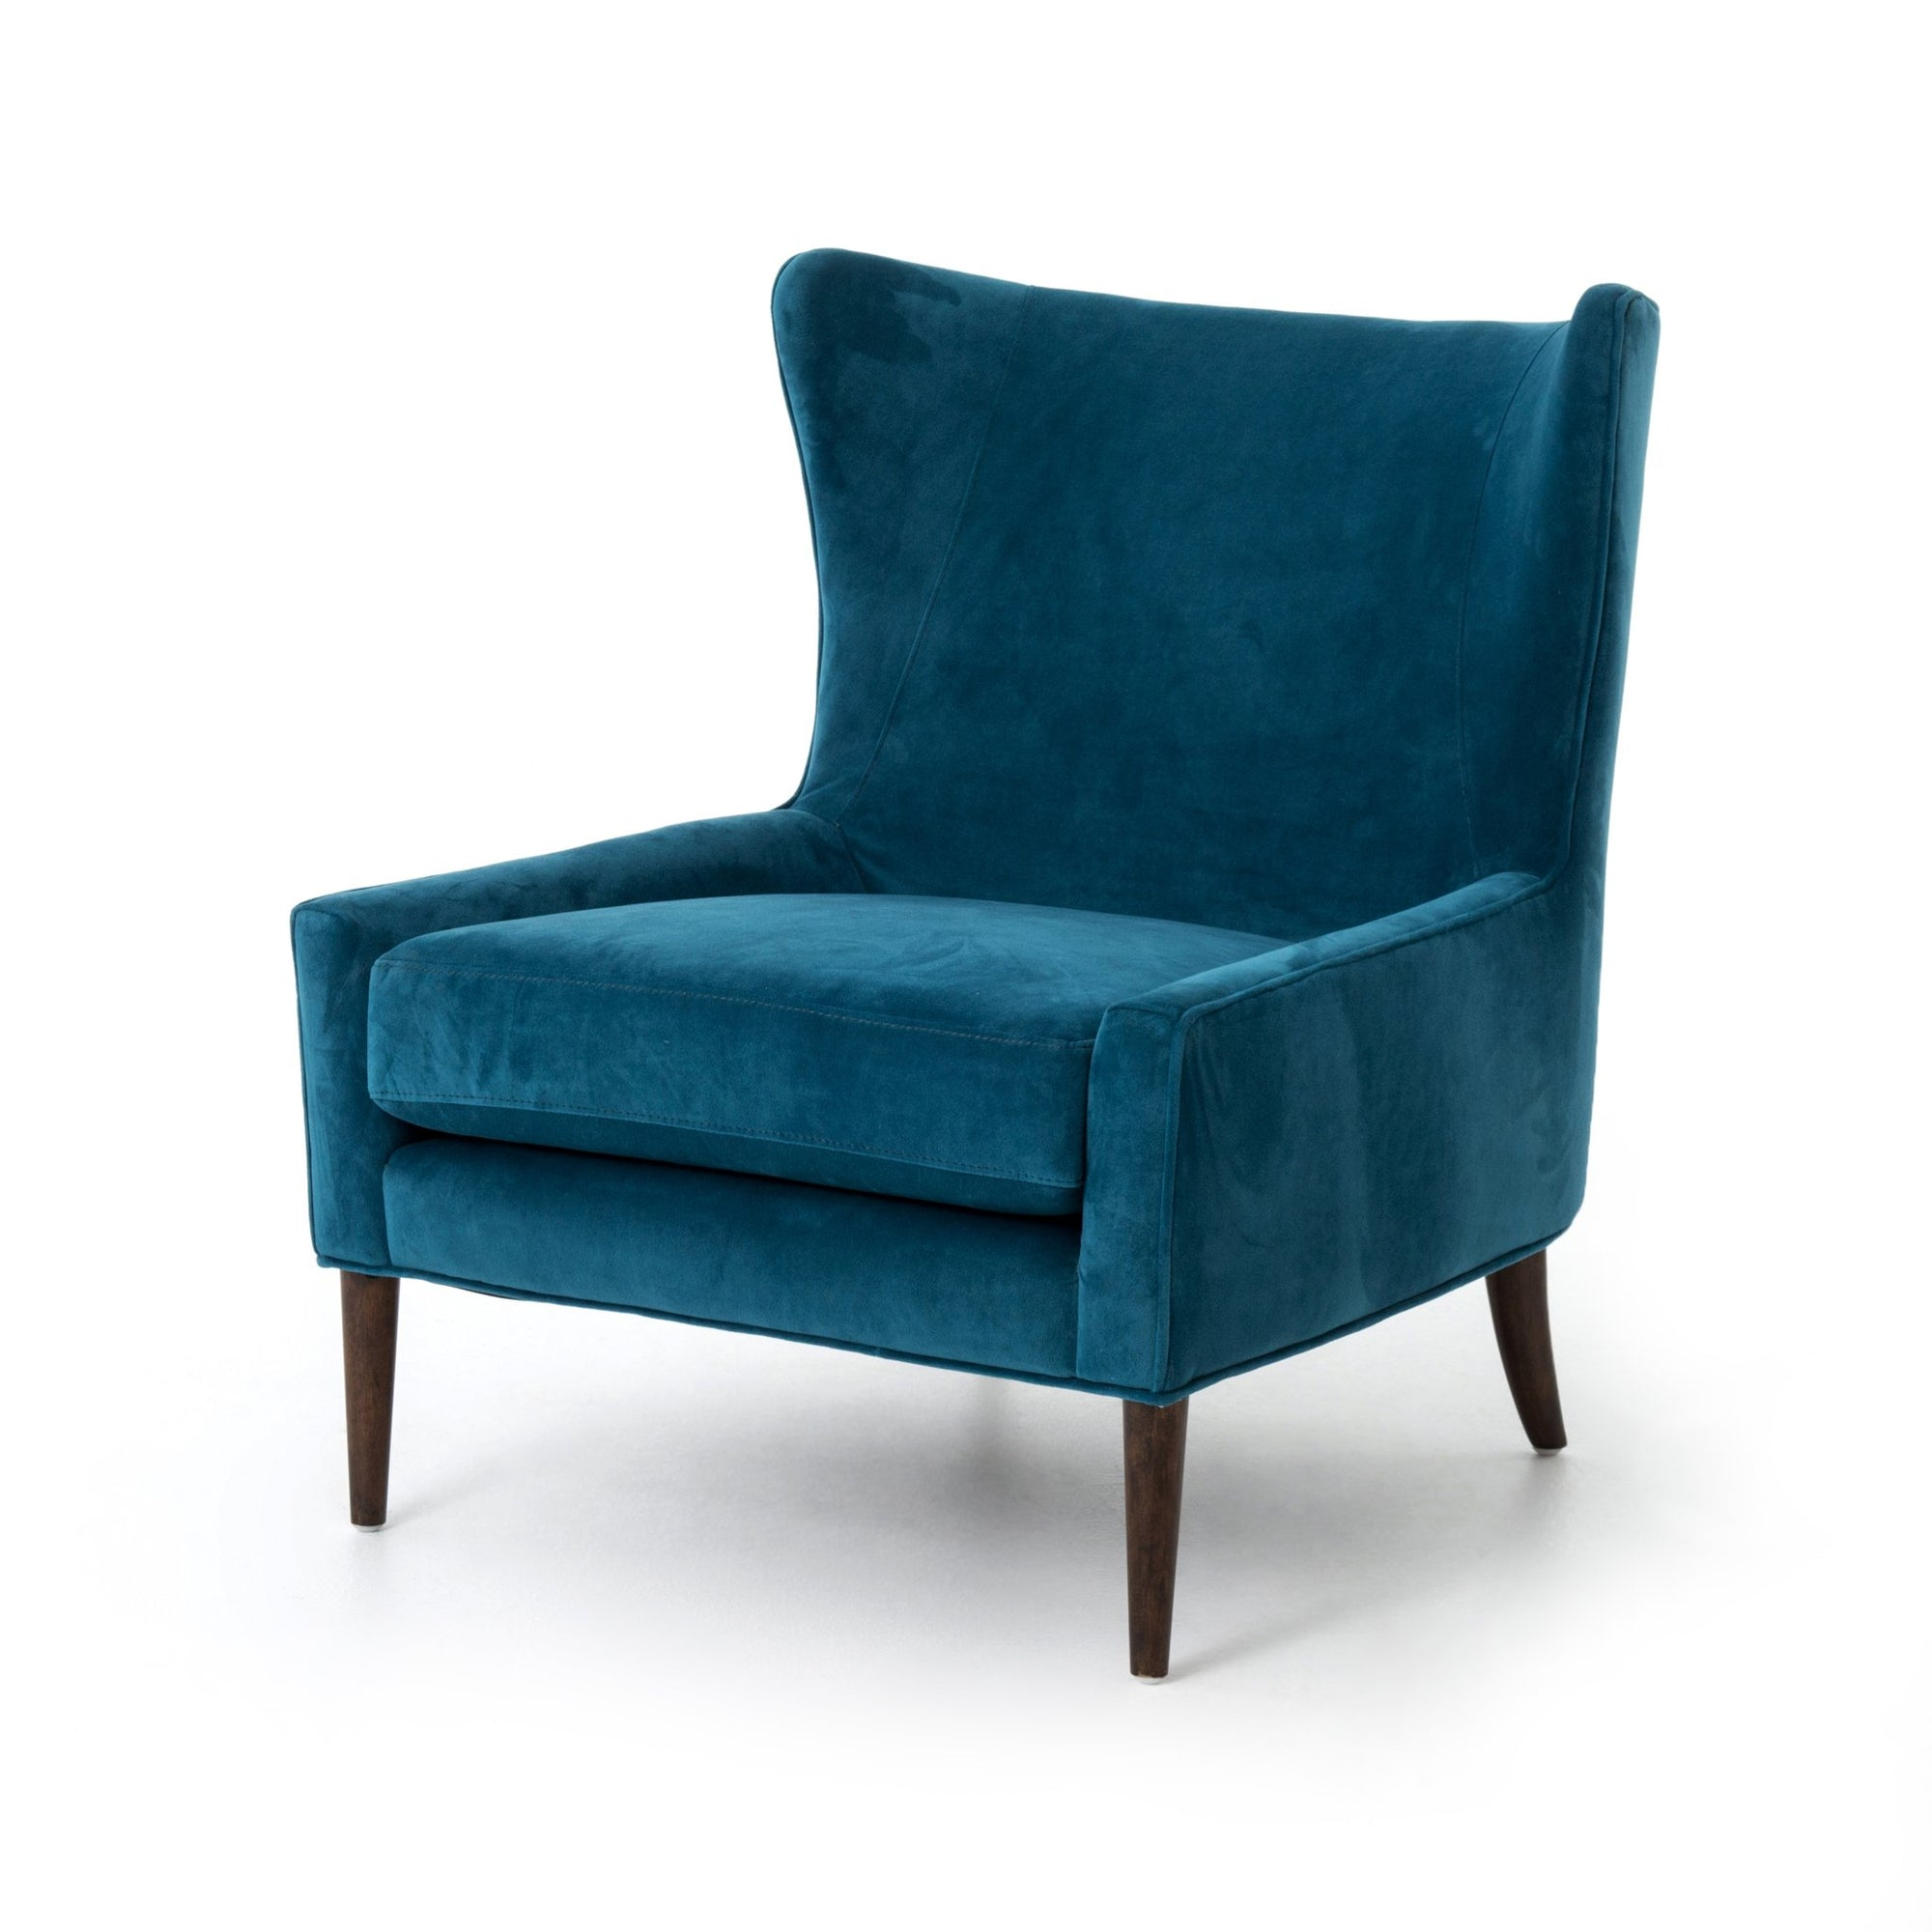 Marlow Chair - May Wynn